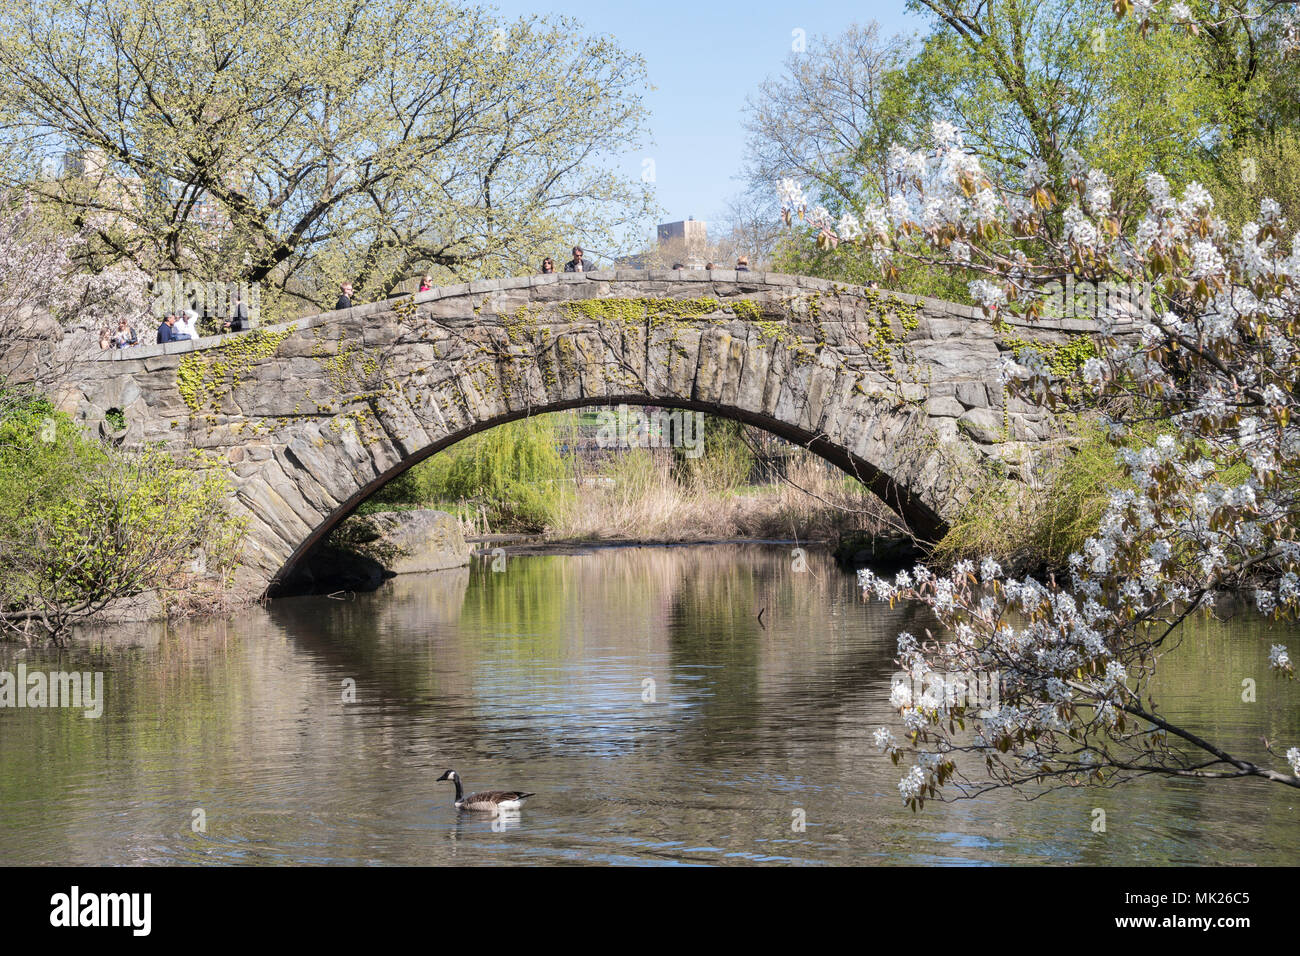 Gapstow Bridge in Central Park, NYC, USA - Stock Image